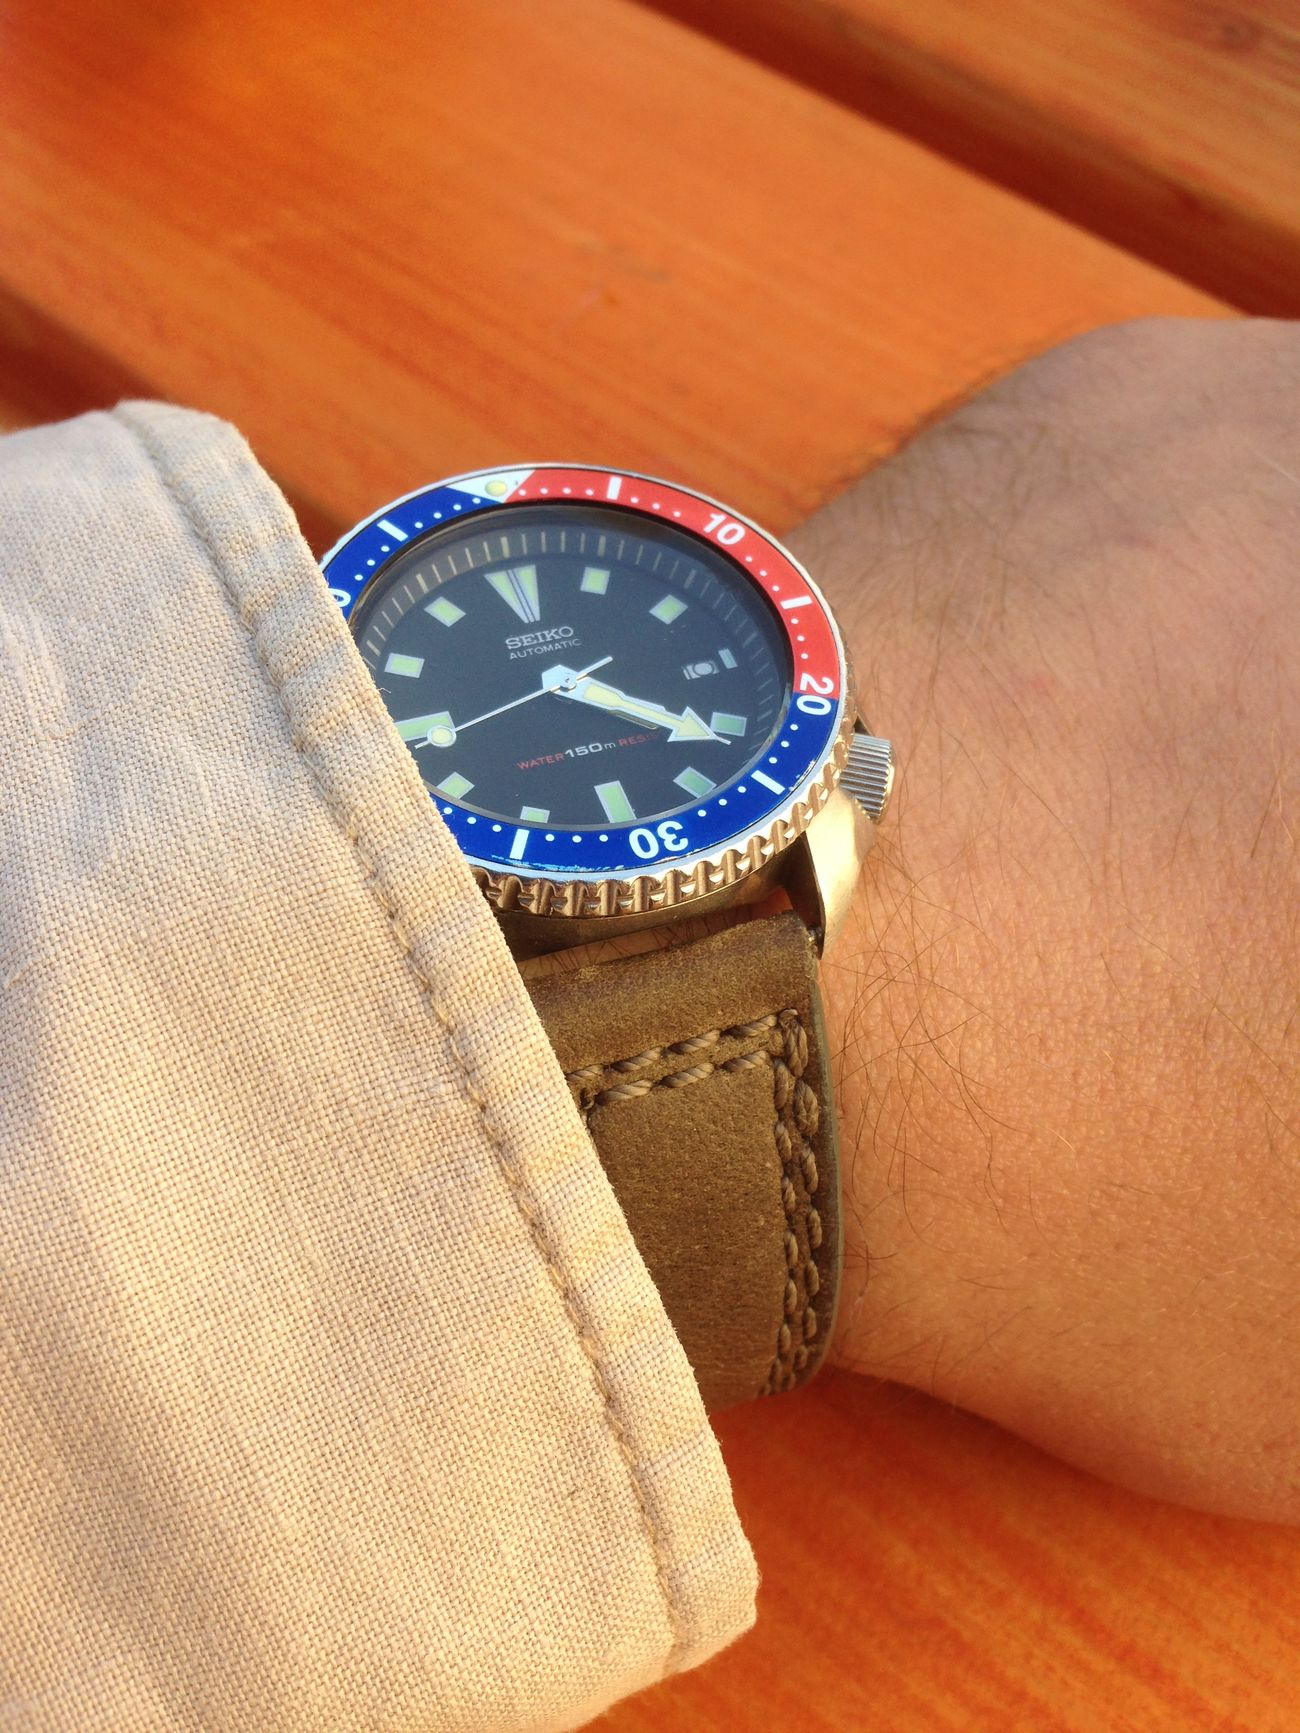 Seiko 7002 Diver Watch Daily Beater